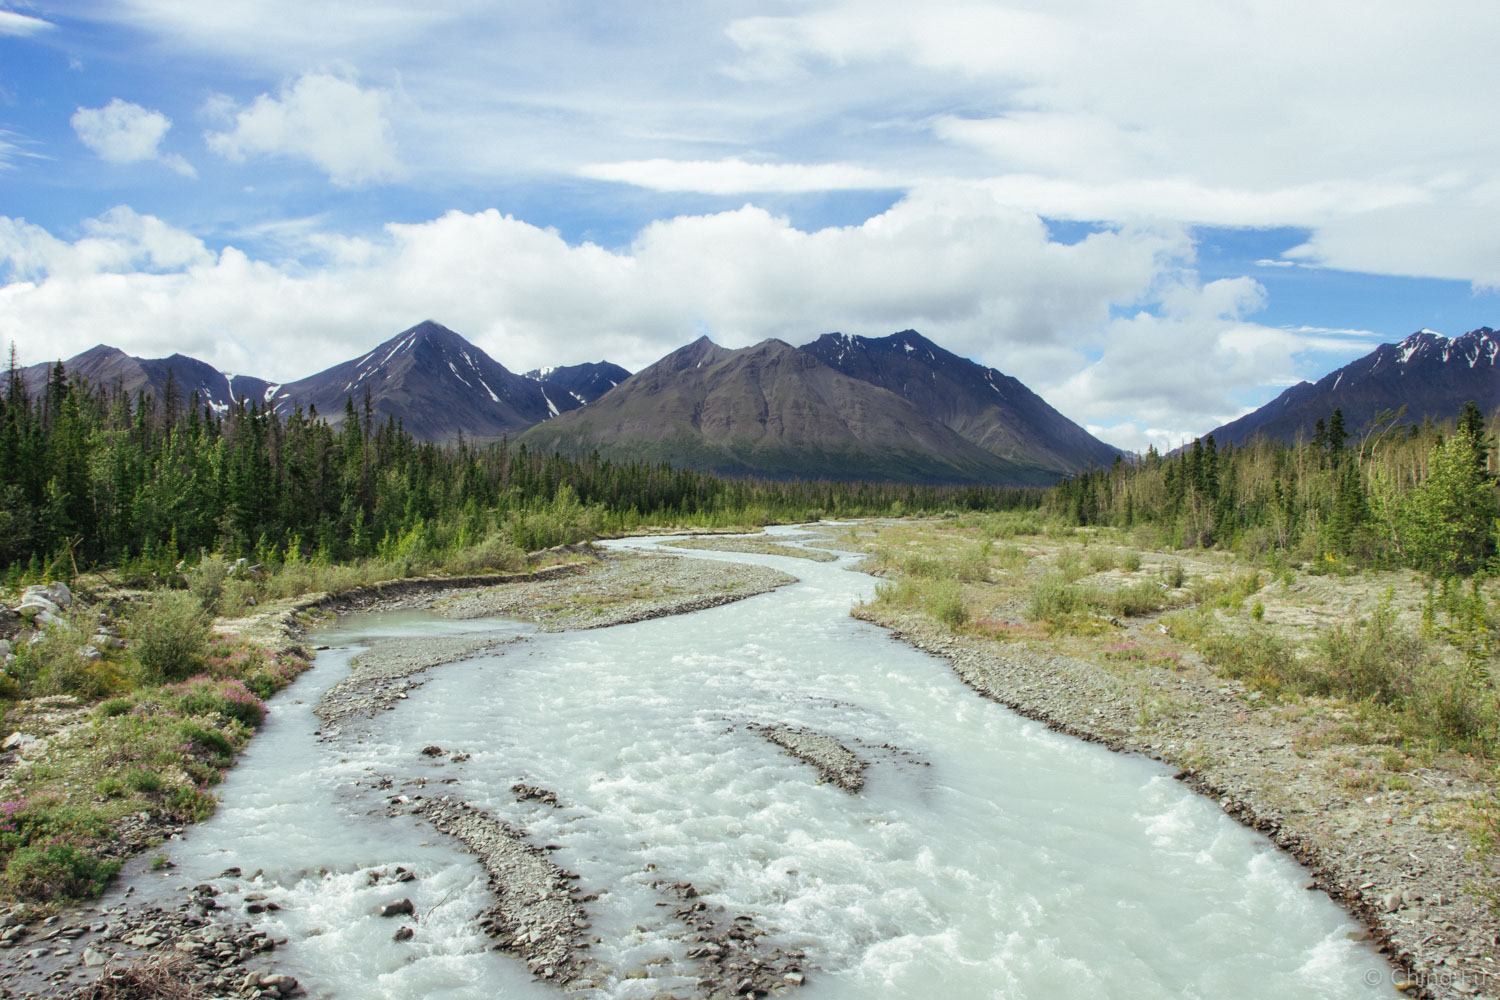 This is the view from Haines Highway of Quill Creek and the Auriol Range. Cars crossing the creek could see the Toaster tucked in the trees on the left riverbank if they looked at the right time.